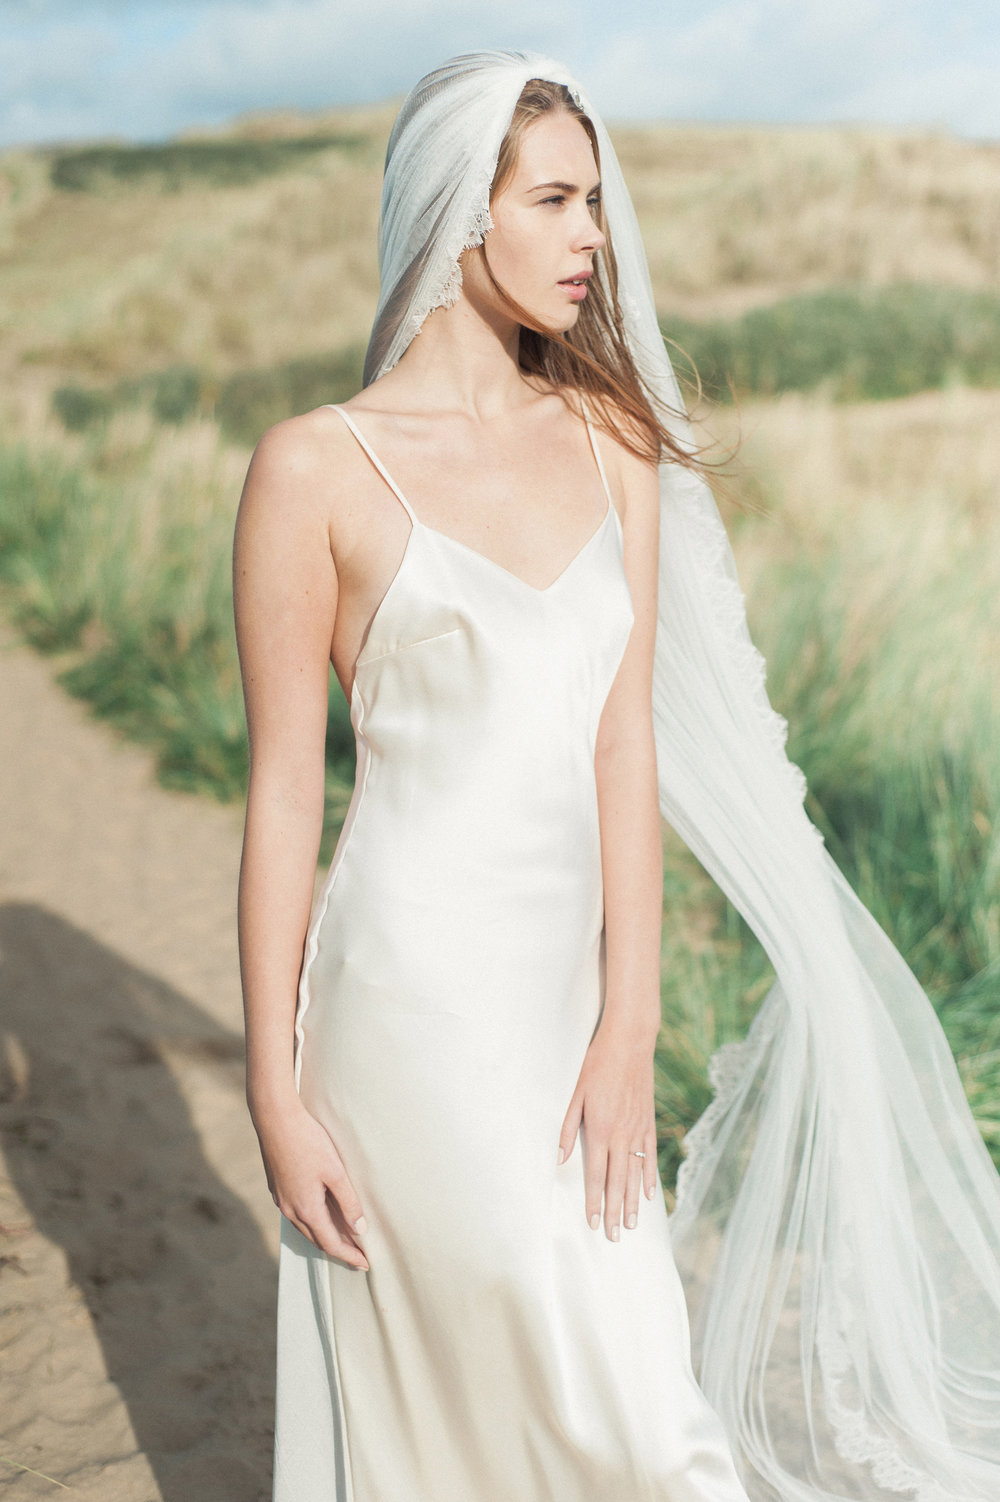 Kate-Beaumont-Wedding-Dresses-Formby-Beach-Emma-Pilkington-9.jpg